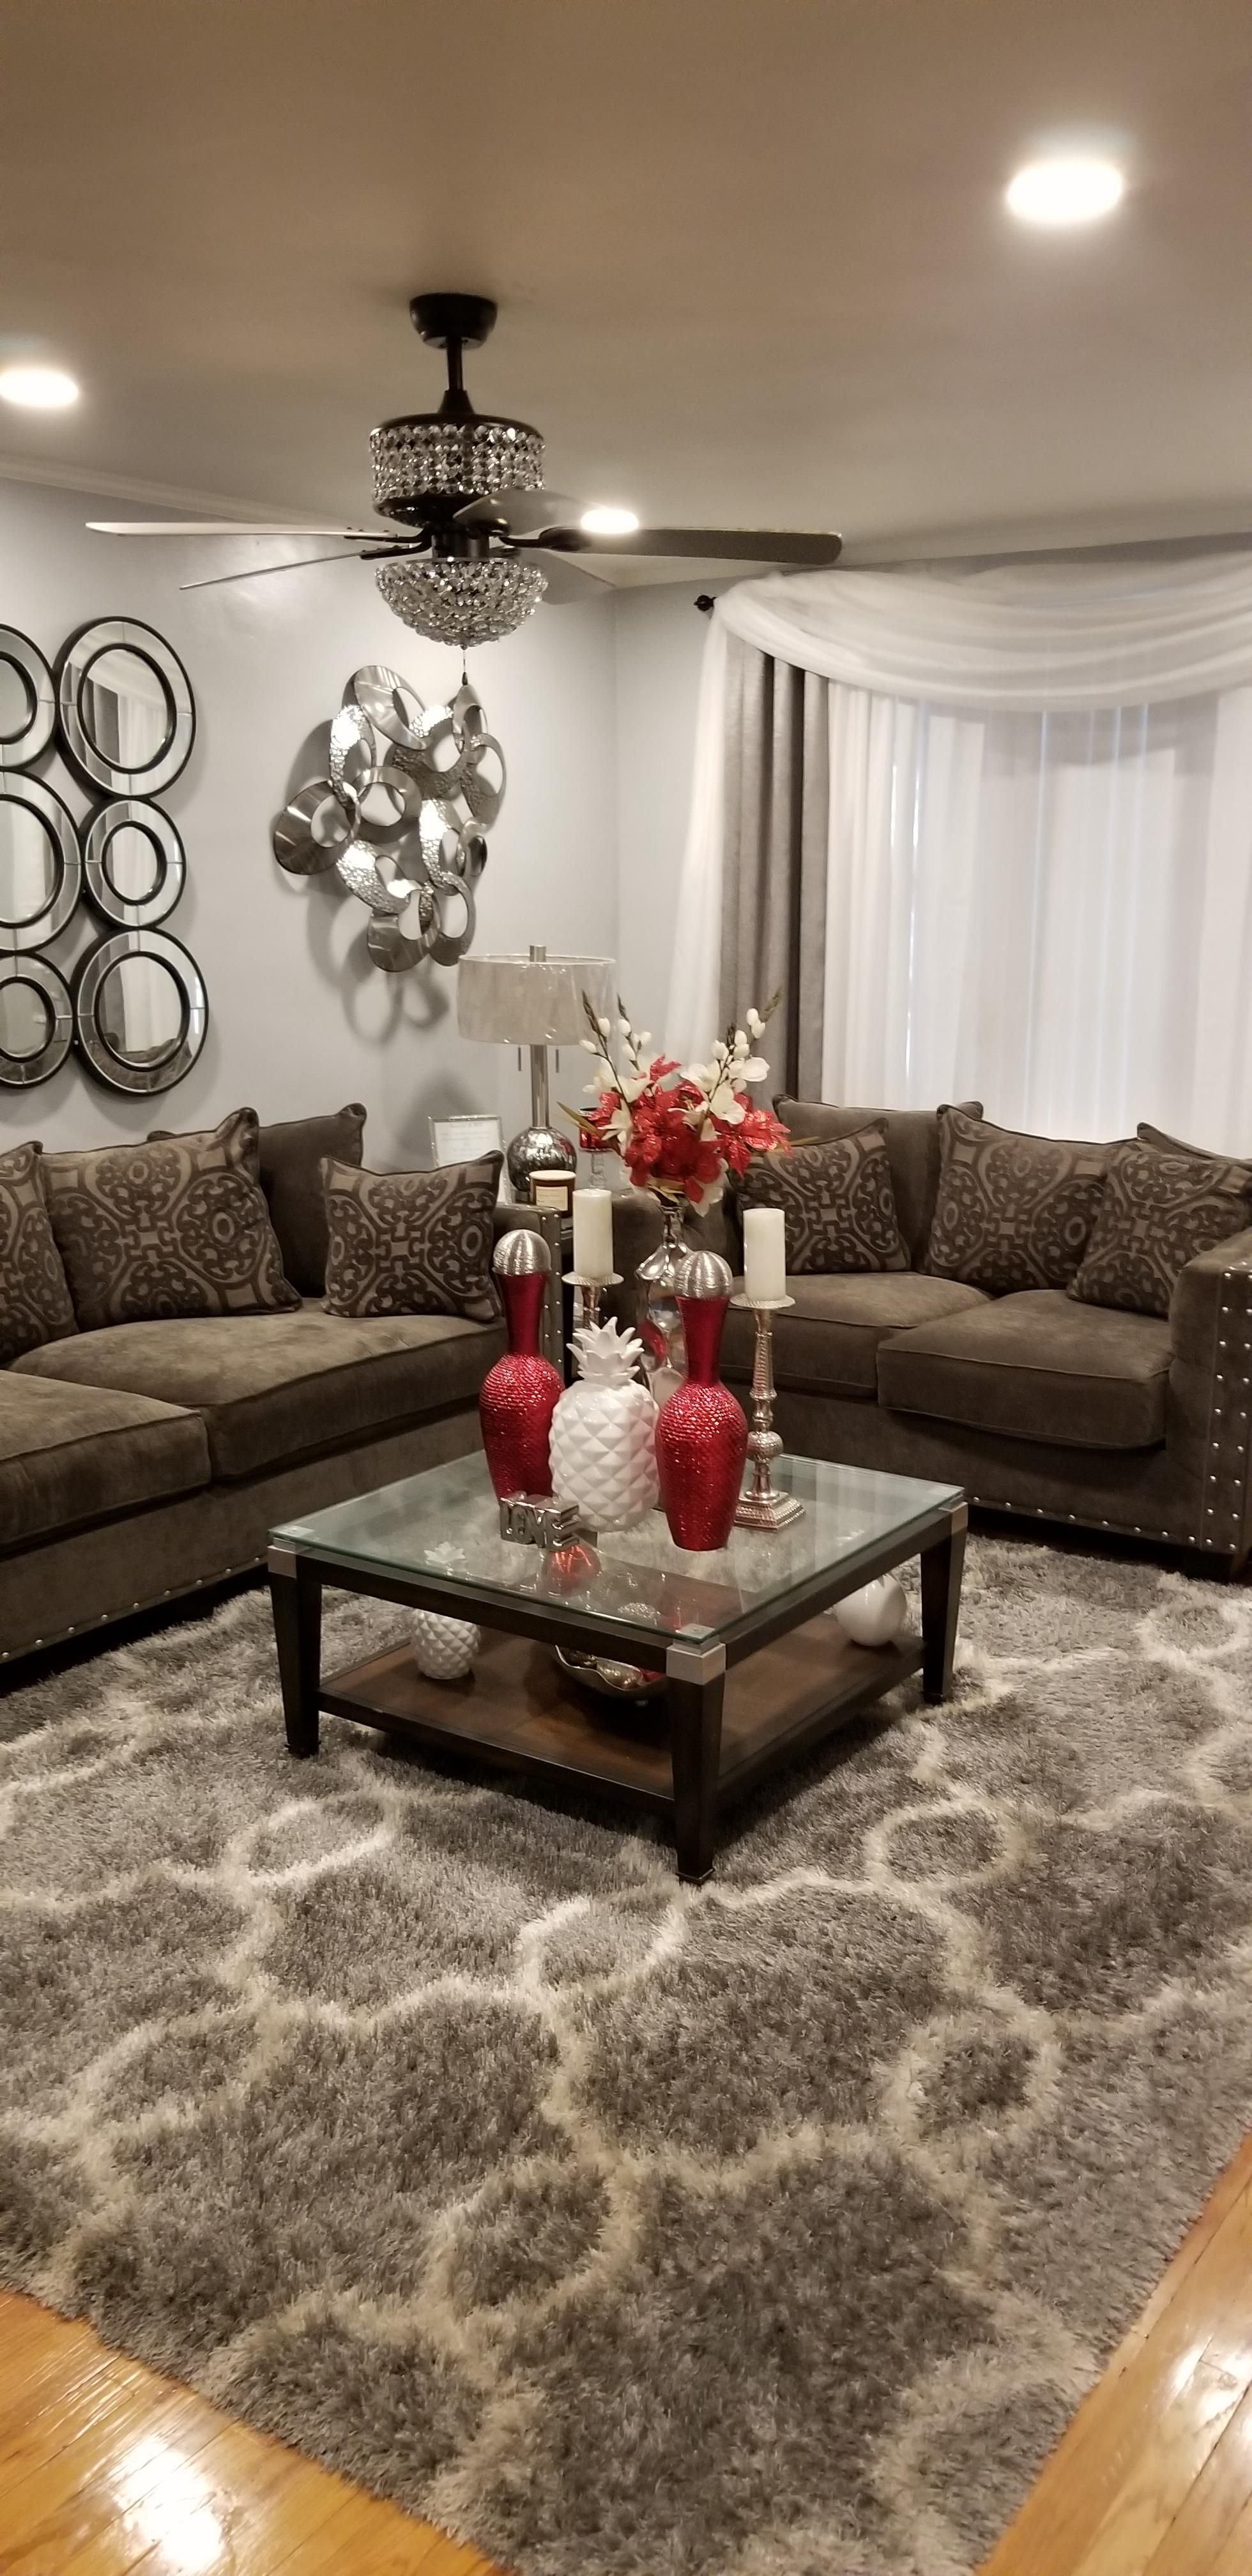 Myrfstyle Decor Raymour And Flanigan Coffee Table [ 4032 x 1960 Pixel ]